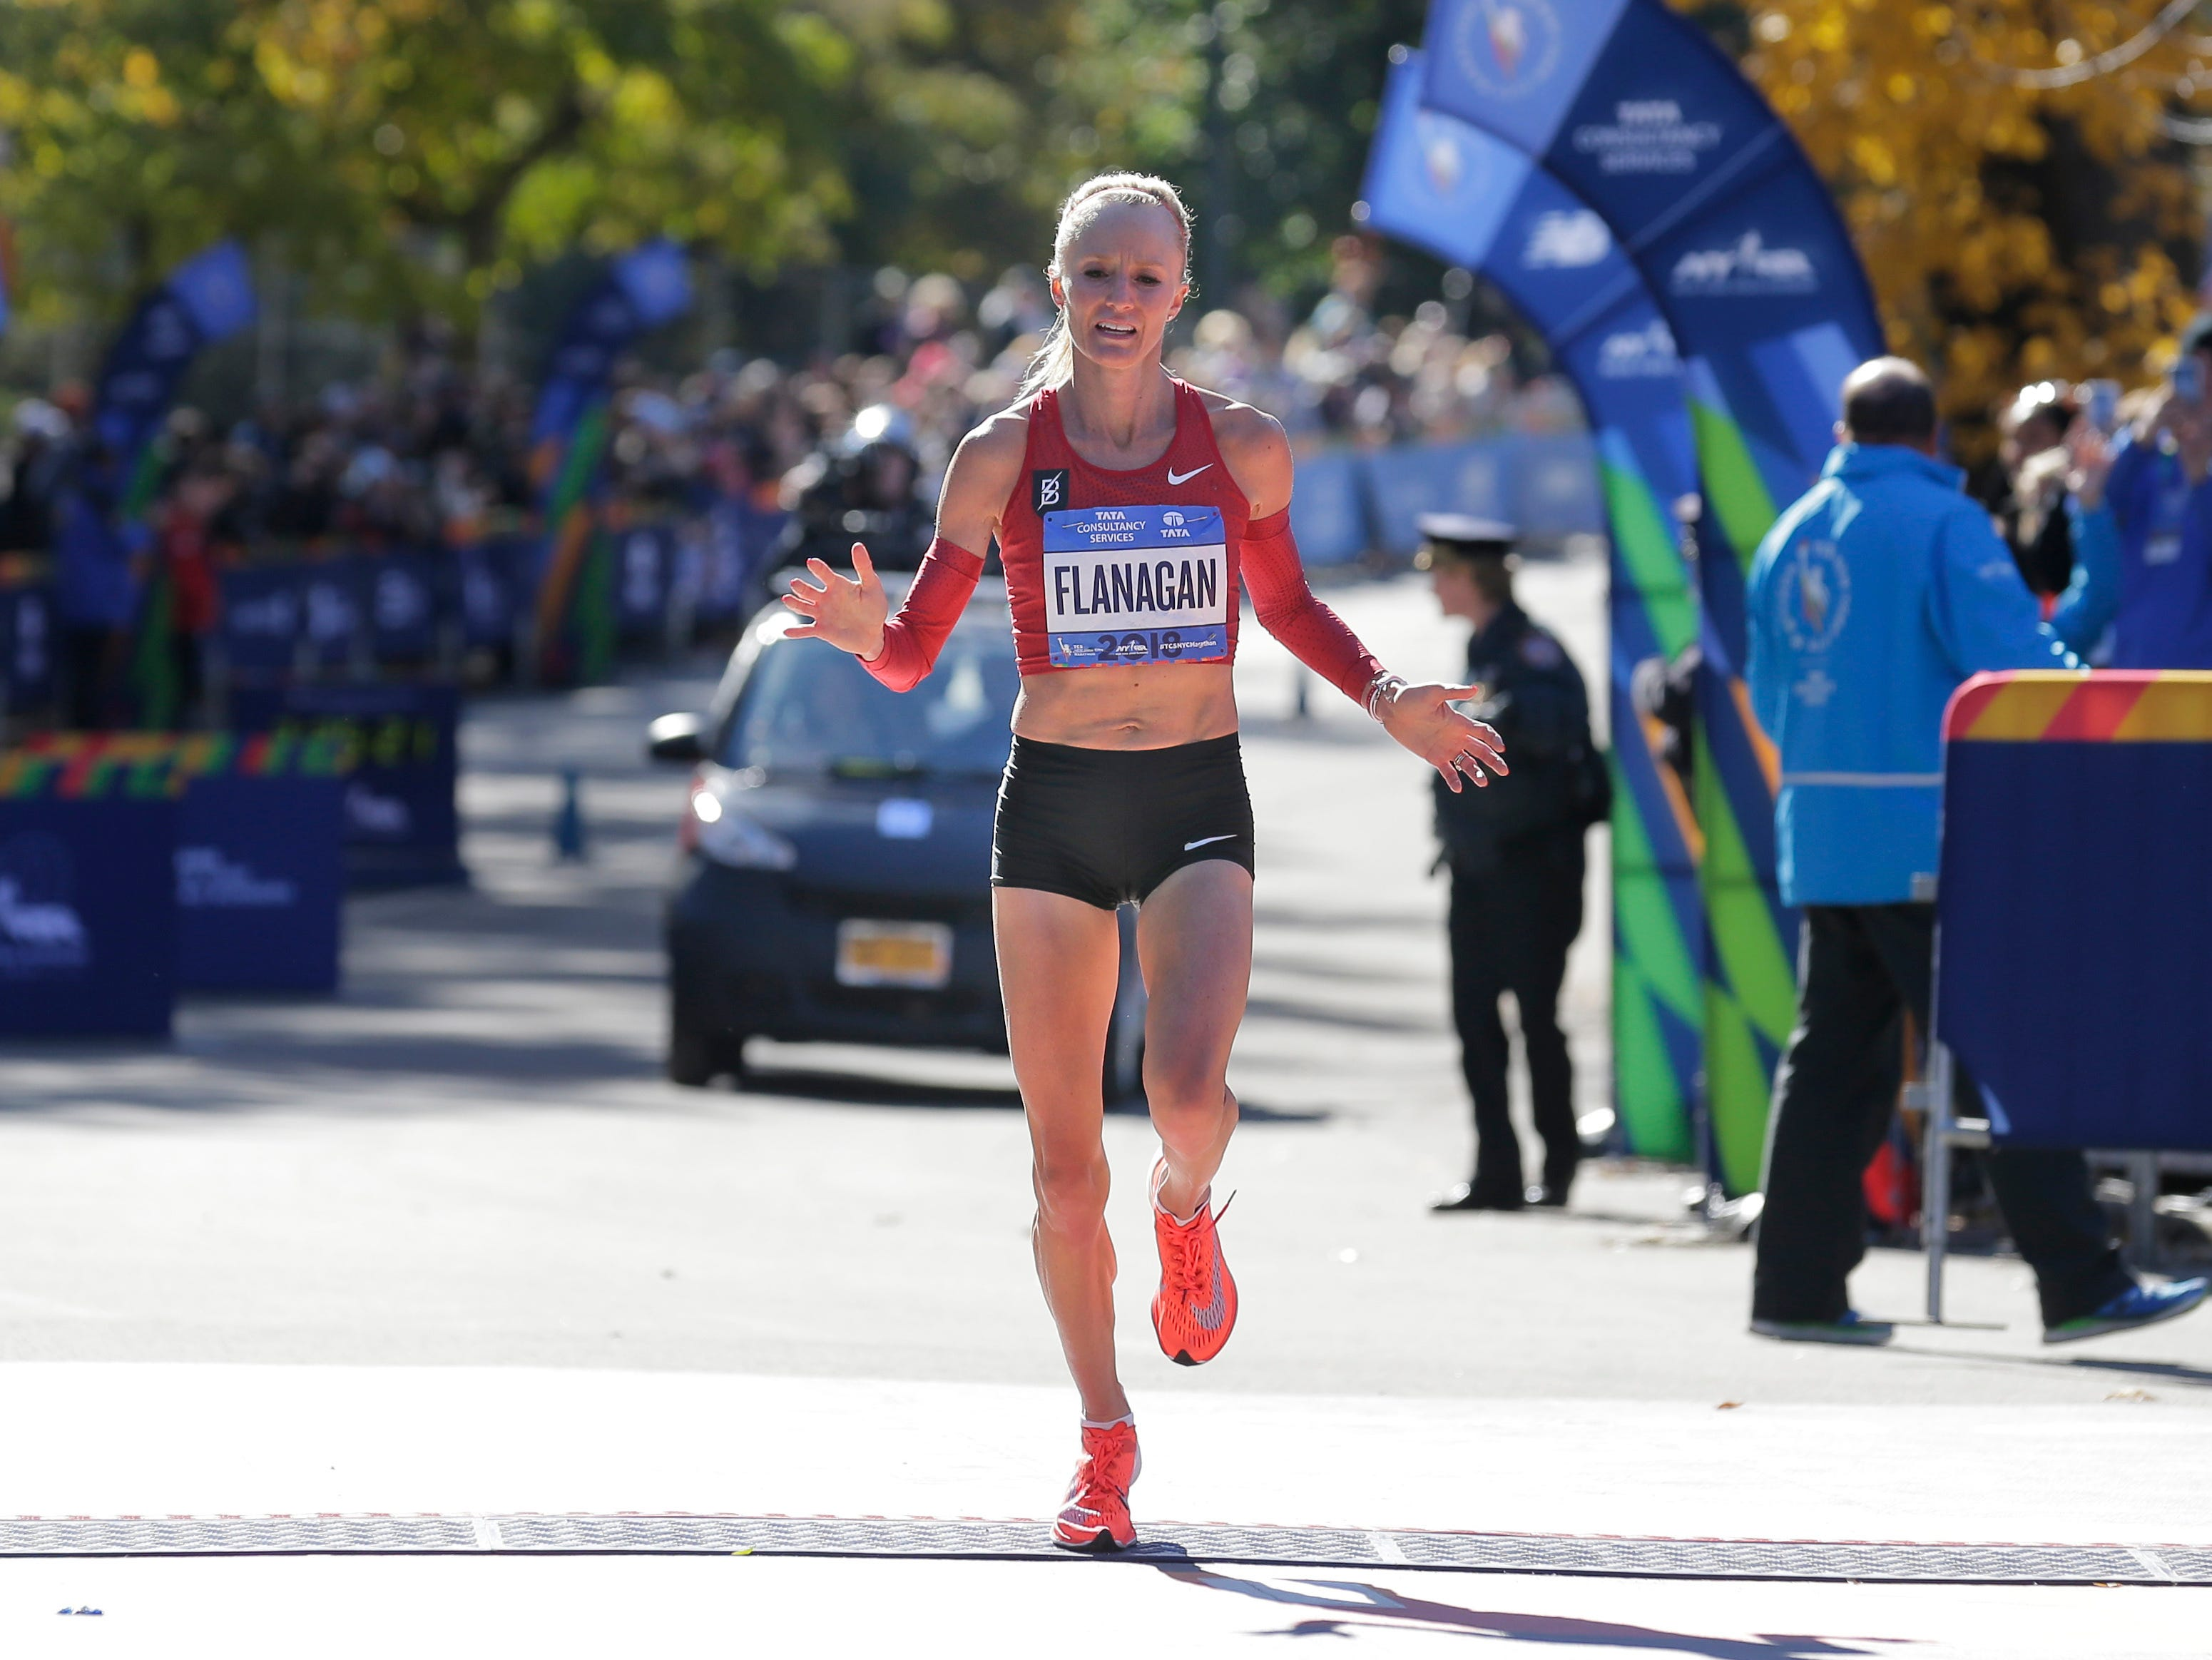 Shalane Flanagan, the defending champion from the United States, crosses the finish line third in the women's division of the New York City Marathon.